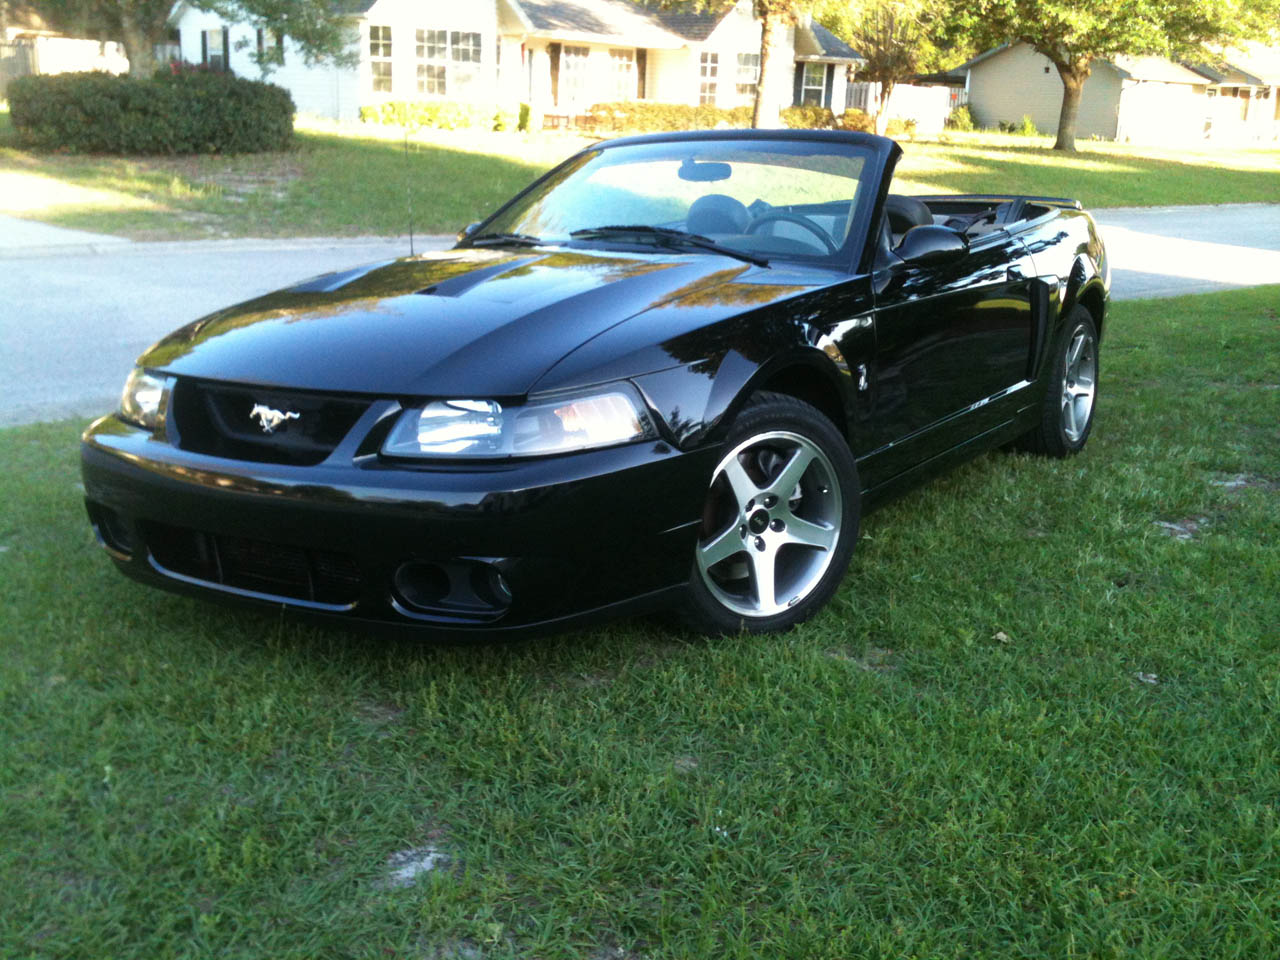 Ford Mustang Parts >> 2003 Black Ford Mustang Cobra Eaton Supercharged Pictures, Mods, Upgrades, Wallpaper - DragTimes.com